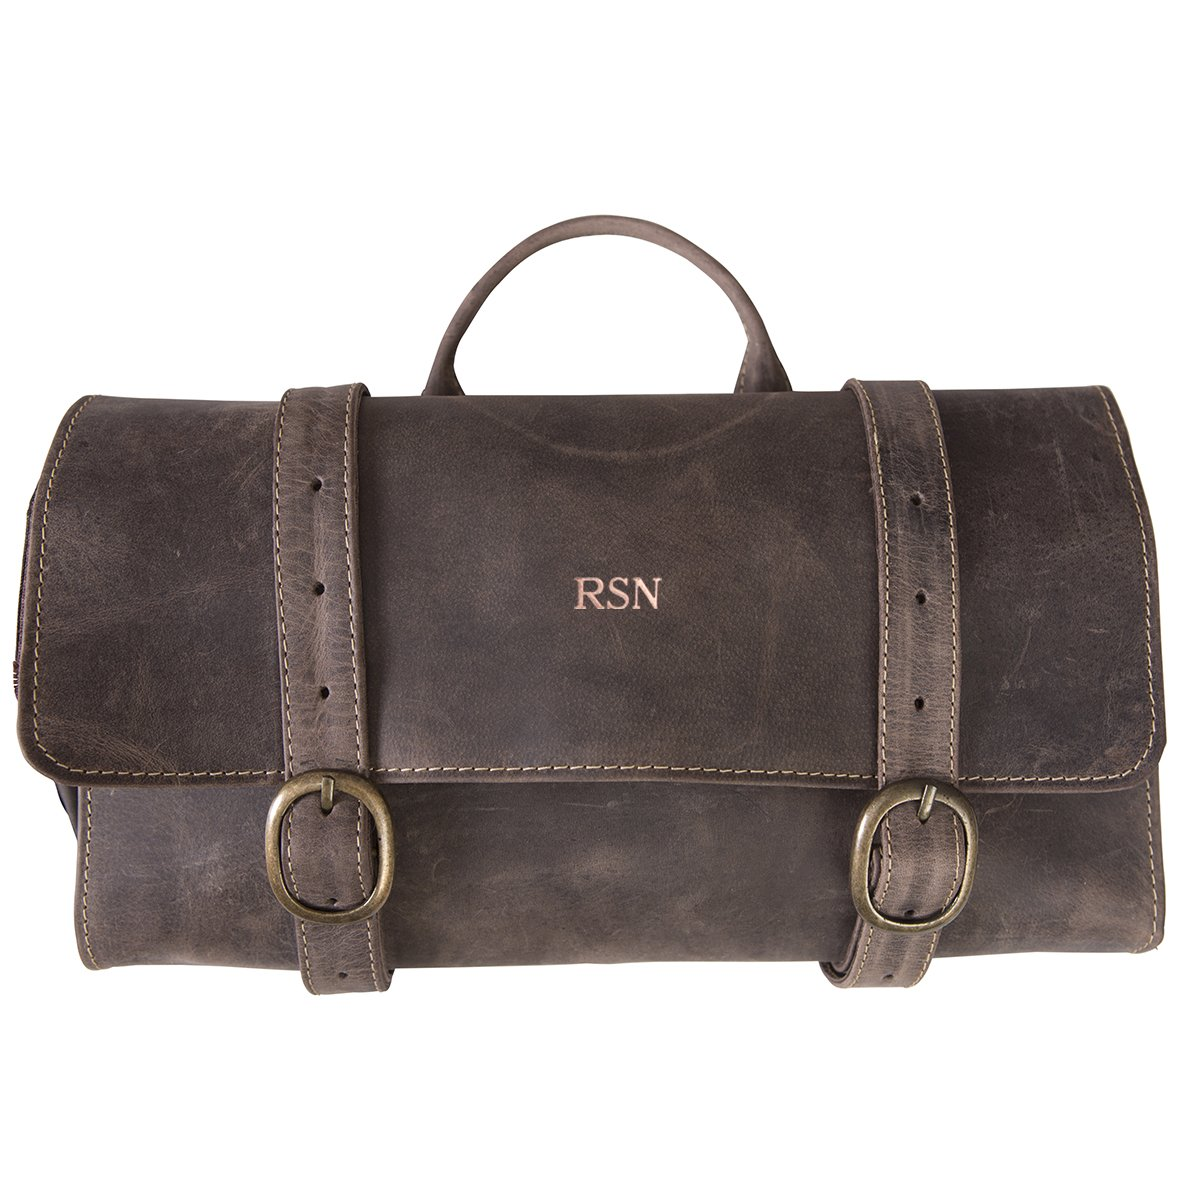 Personalized Distressed Brown Leather Hanging Men's Travel Toiletry Bag - Rose Gold